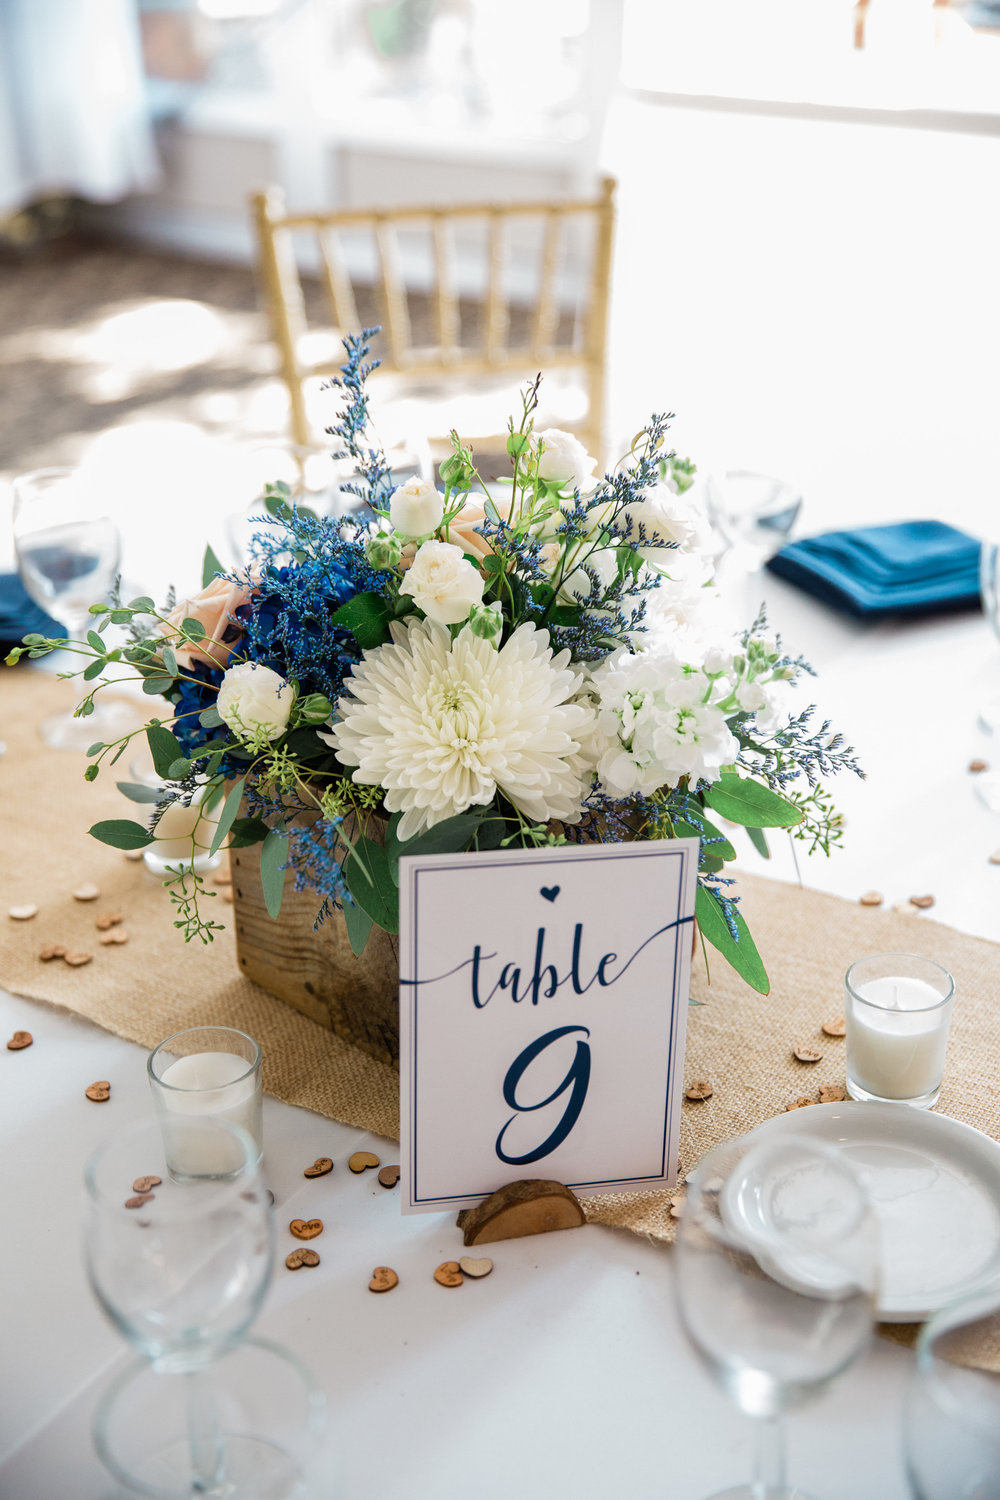 Neil+Christine_FairviewWedding_7.28.18-289.jpg